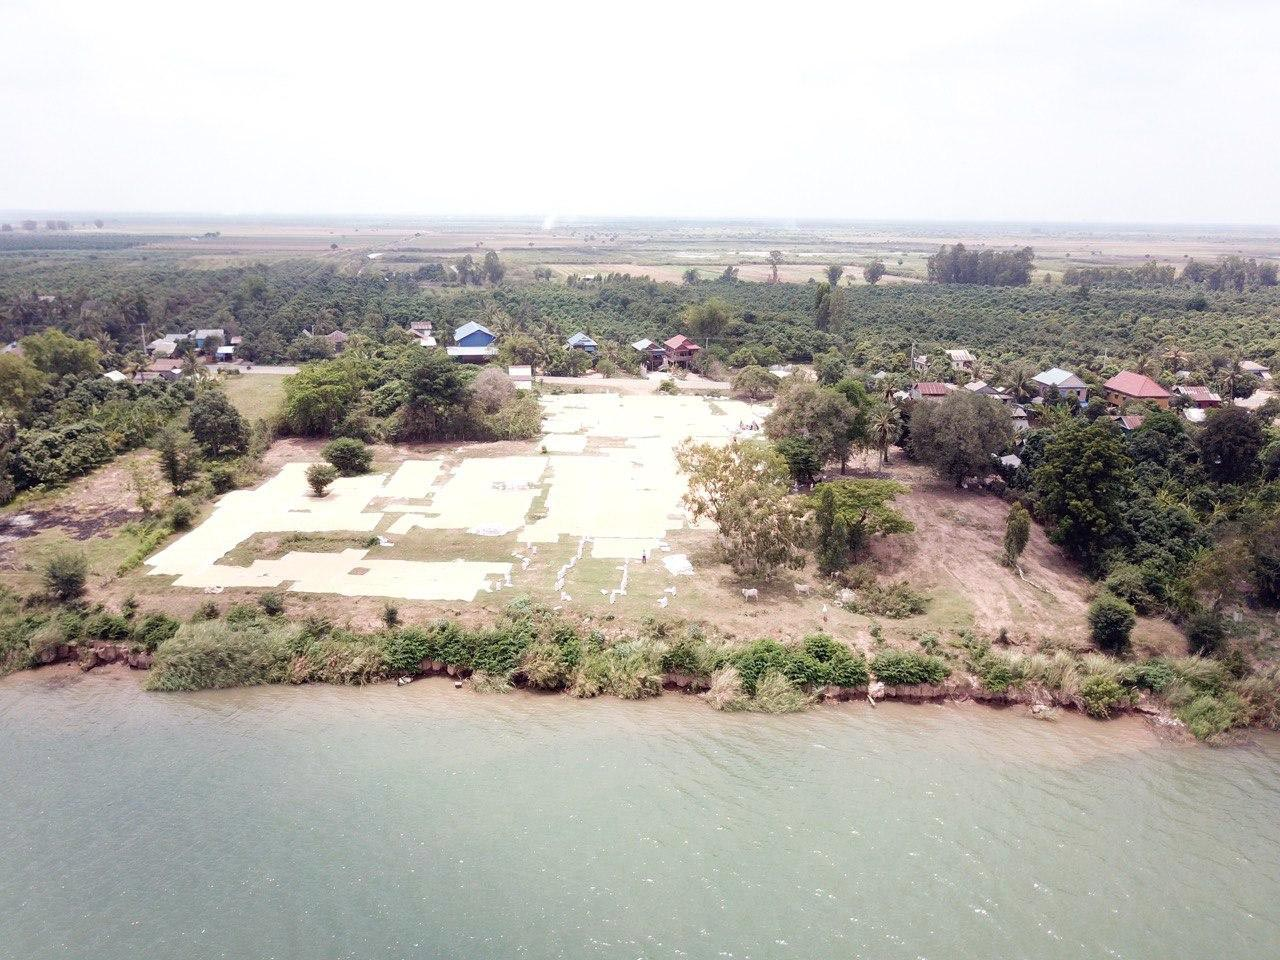 Land for Sale in Neakloung Srok Leuk Daek 1.8 ha